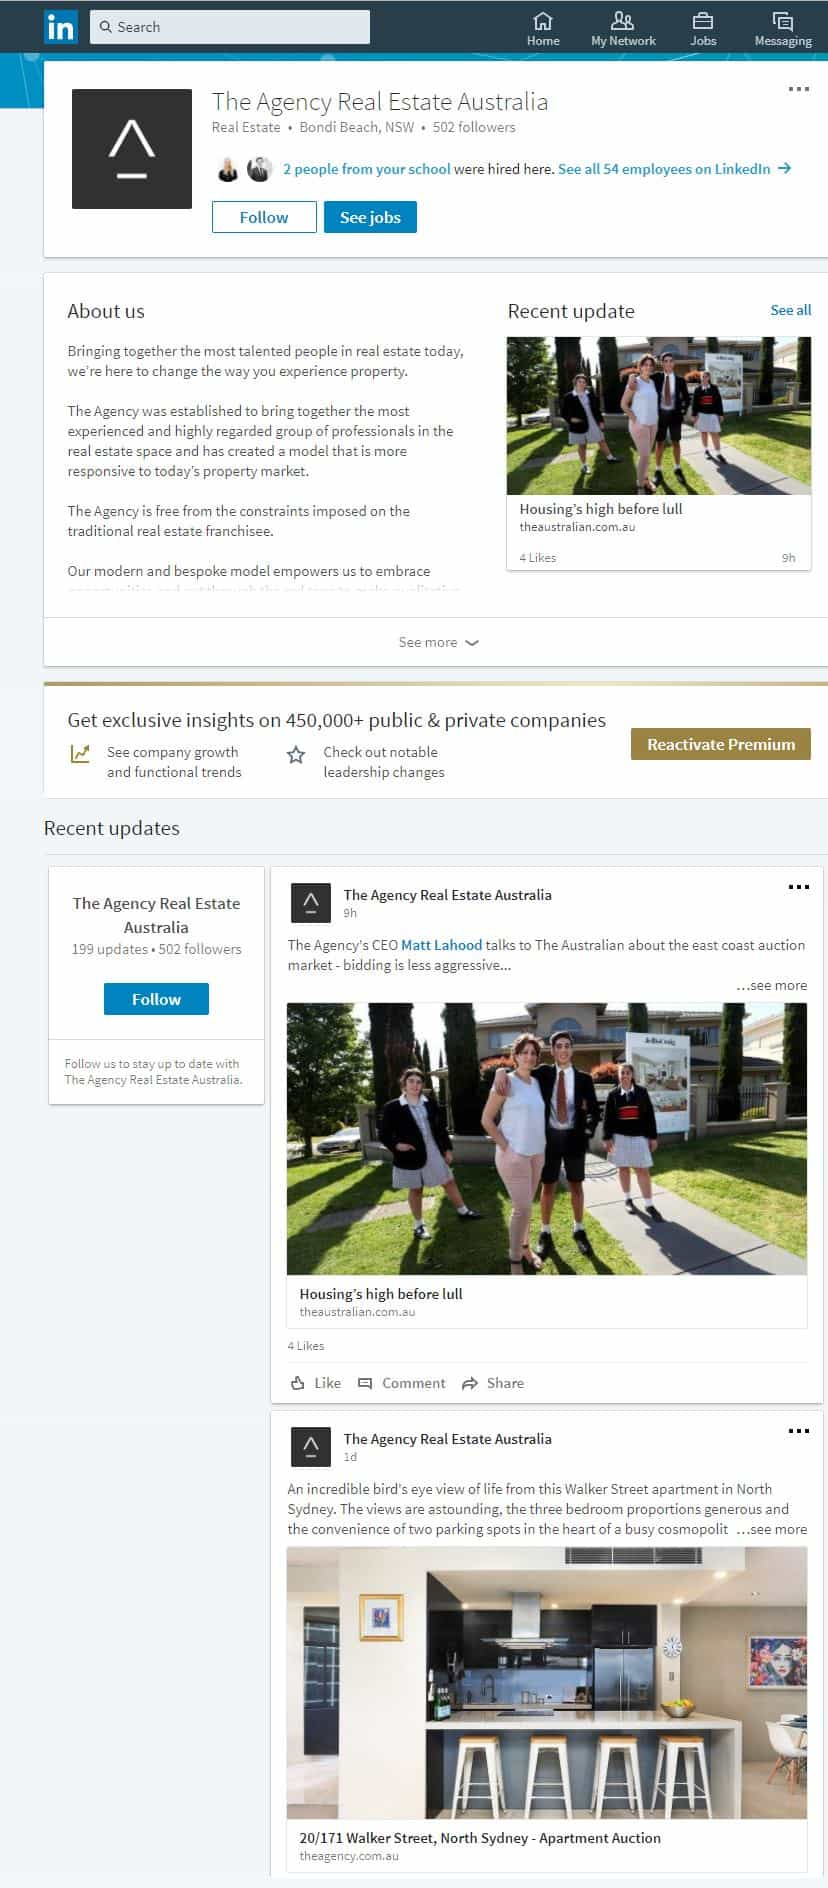 An example of a Real Estate company page designed to help generate real estate leads with LinkedIn.